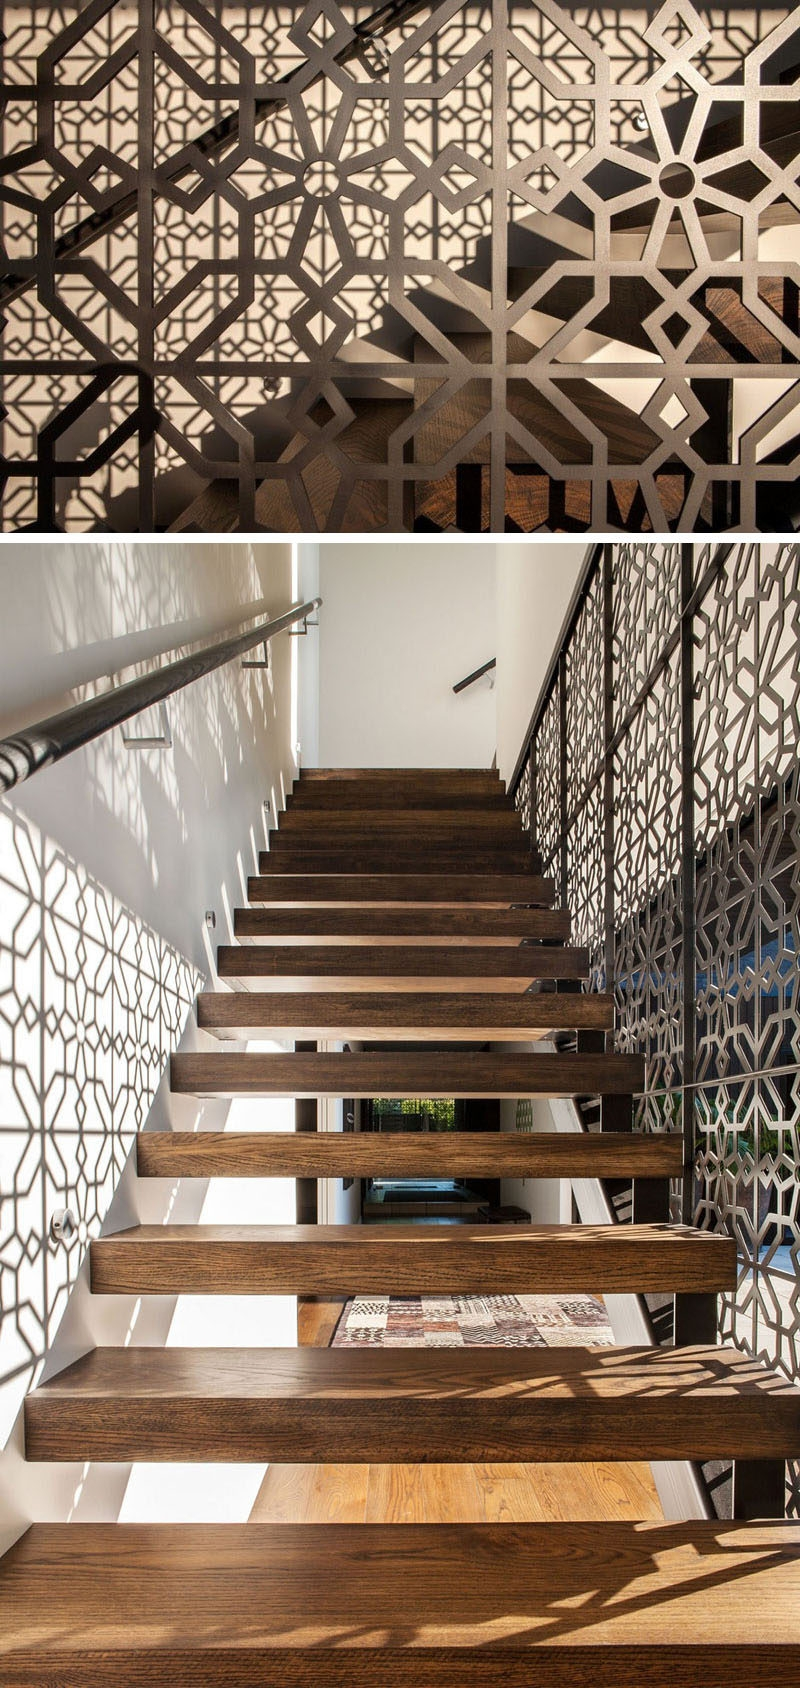 11 Creative Stair Railings That Are A Focal Point In These | Stairs With Glass Sides